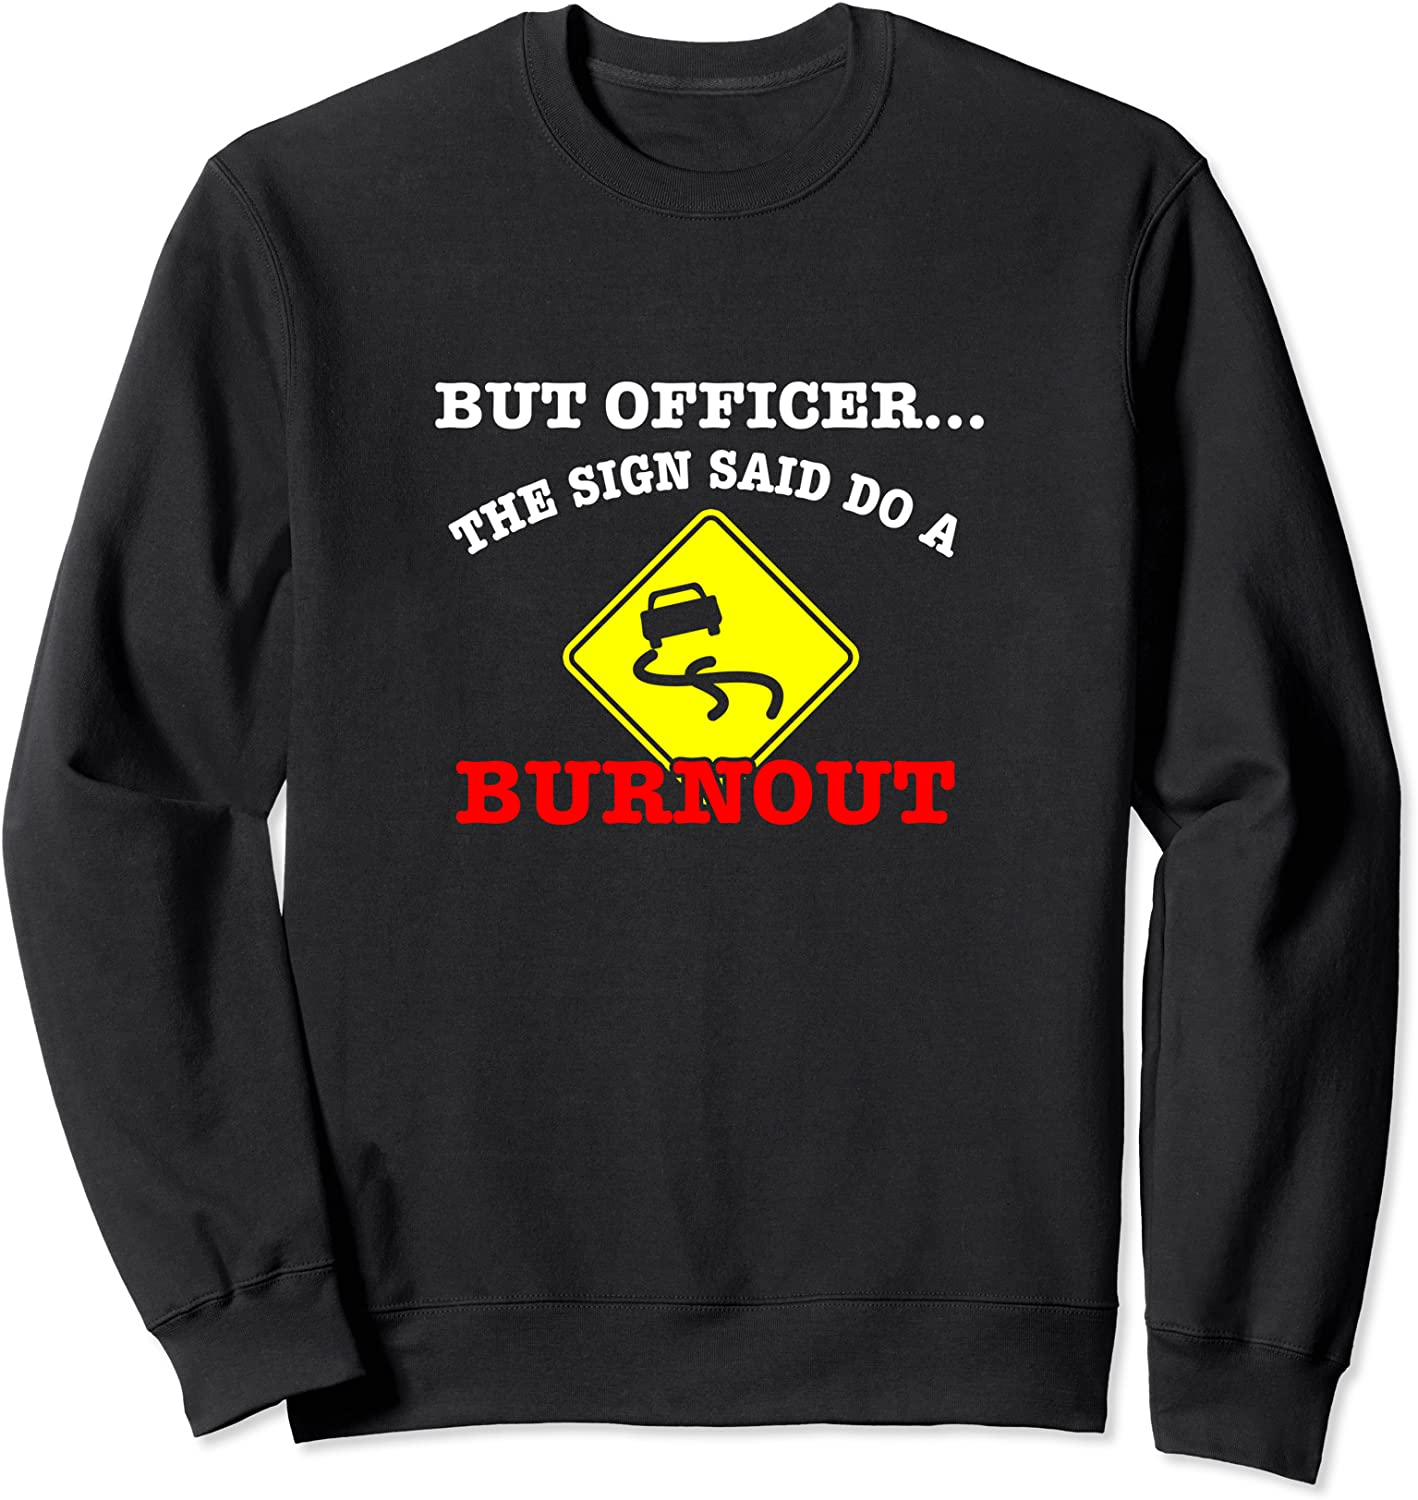 But Officer the sign said Bargain sale to-Burnout lovers gifts car Swea humor In a popularity